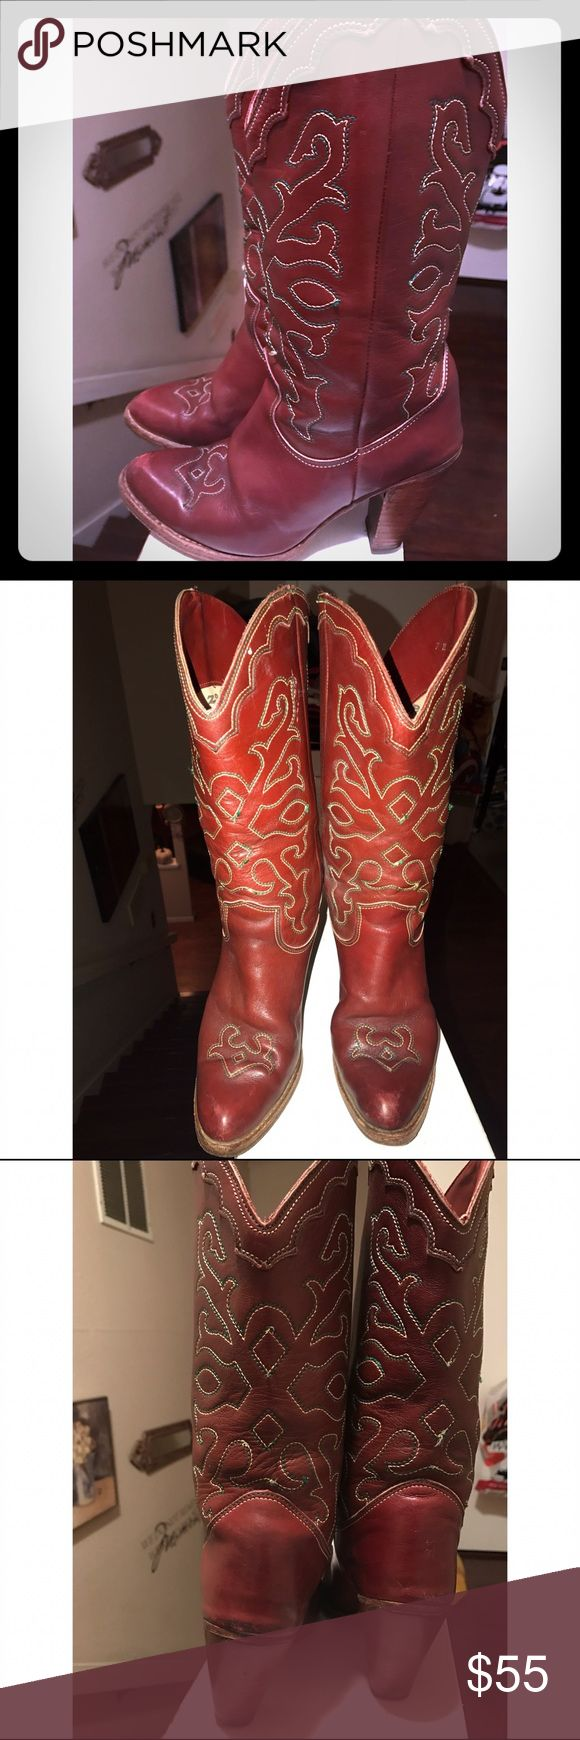 Vintage Zodiac Red Cowboy Heeled  Boots Gorgeous Vintage Red/Cranberry colored cowboy boots with 4 inch heel . Detailed embroidery Gently used . Size 7 Women's Vintage Zodiac Shoes Heeled Boots